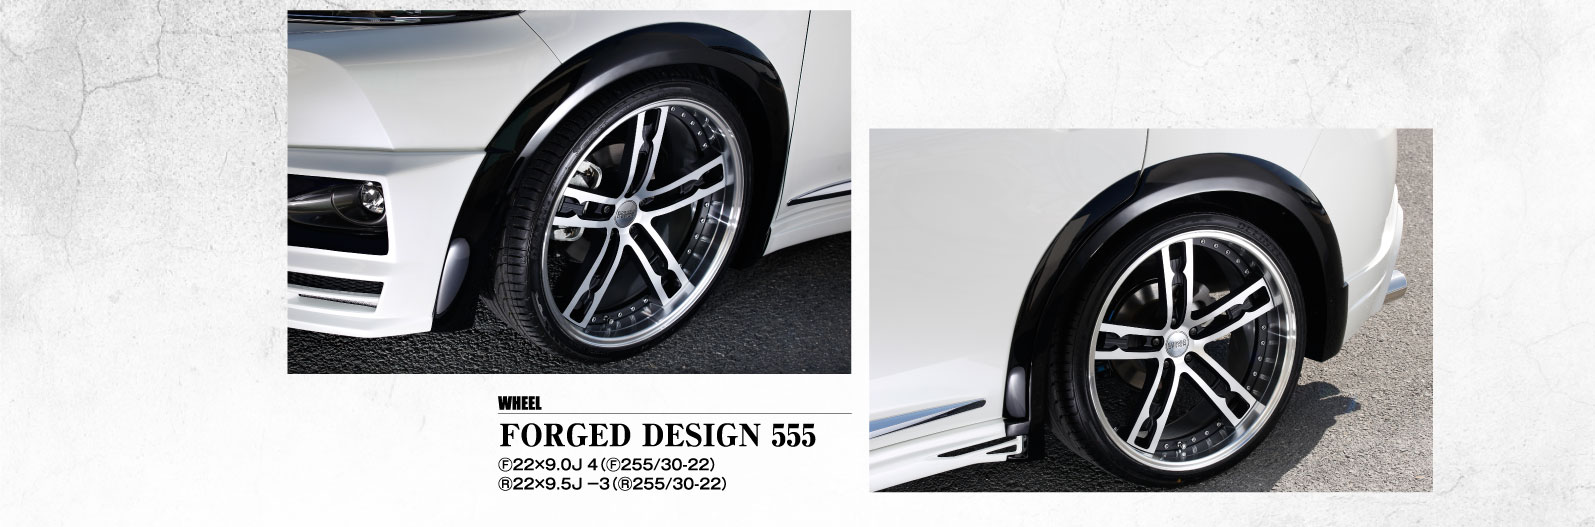 WHEEL FORGED DESIGN 555 F22×9.0J 4(F255/30-22)R22×9.5J-3(R255/30-22)